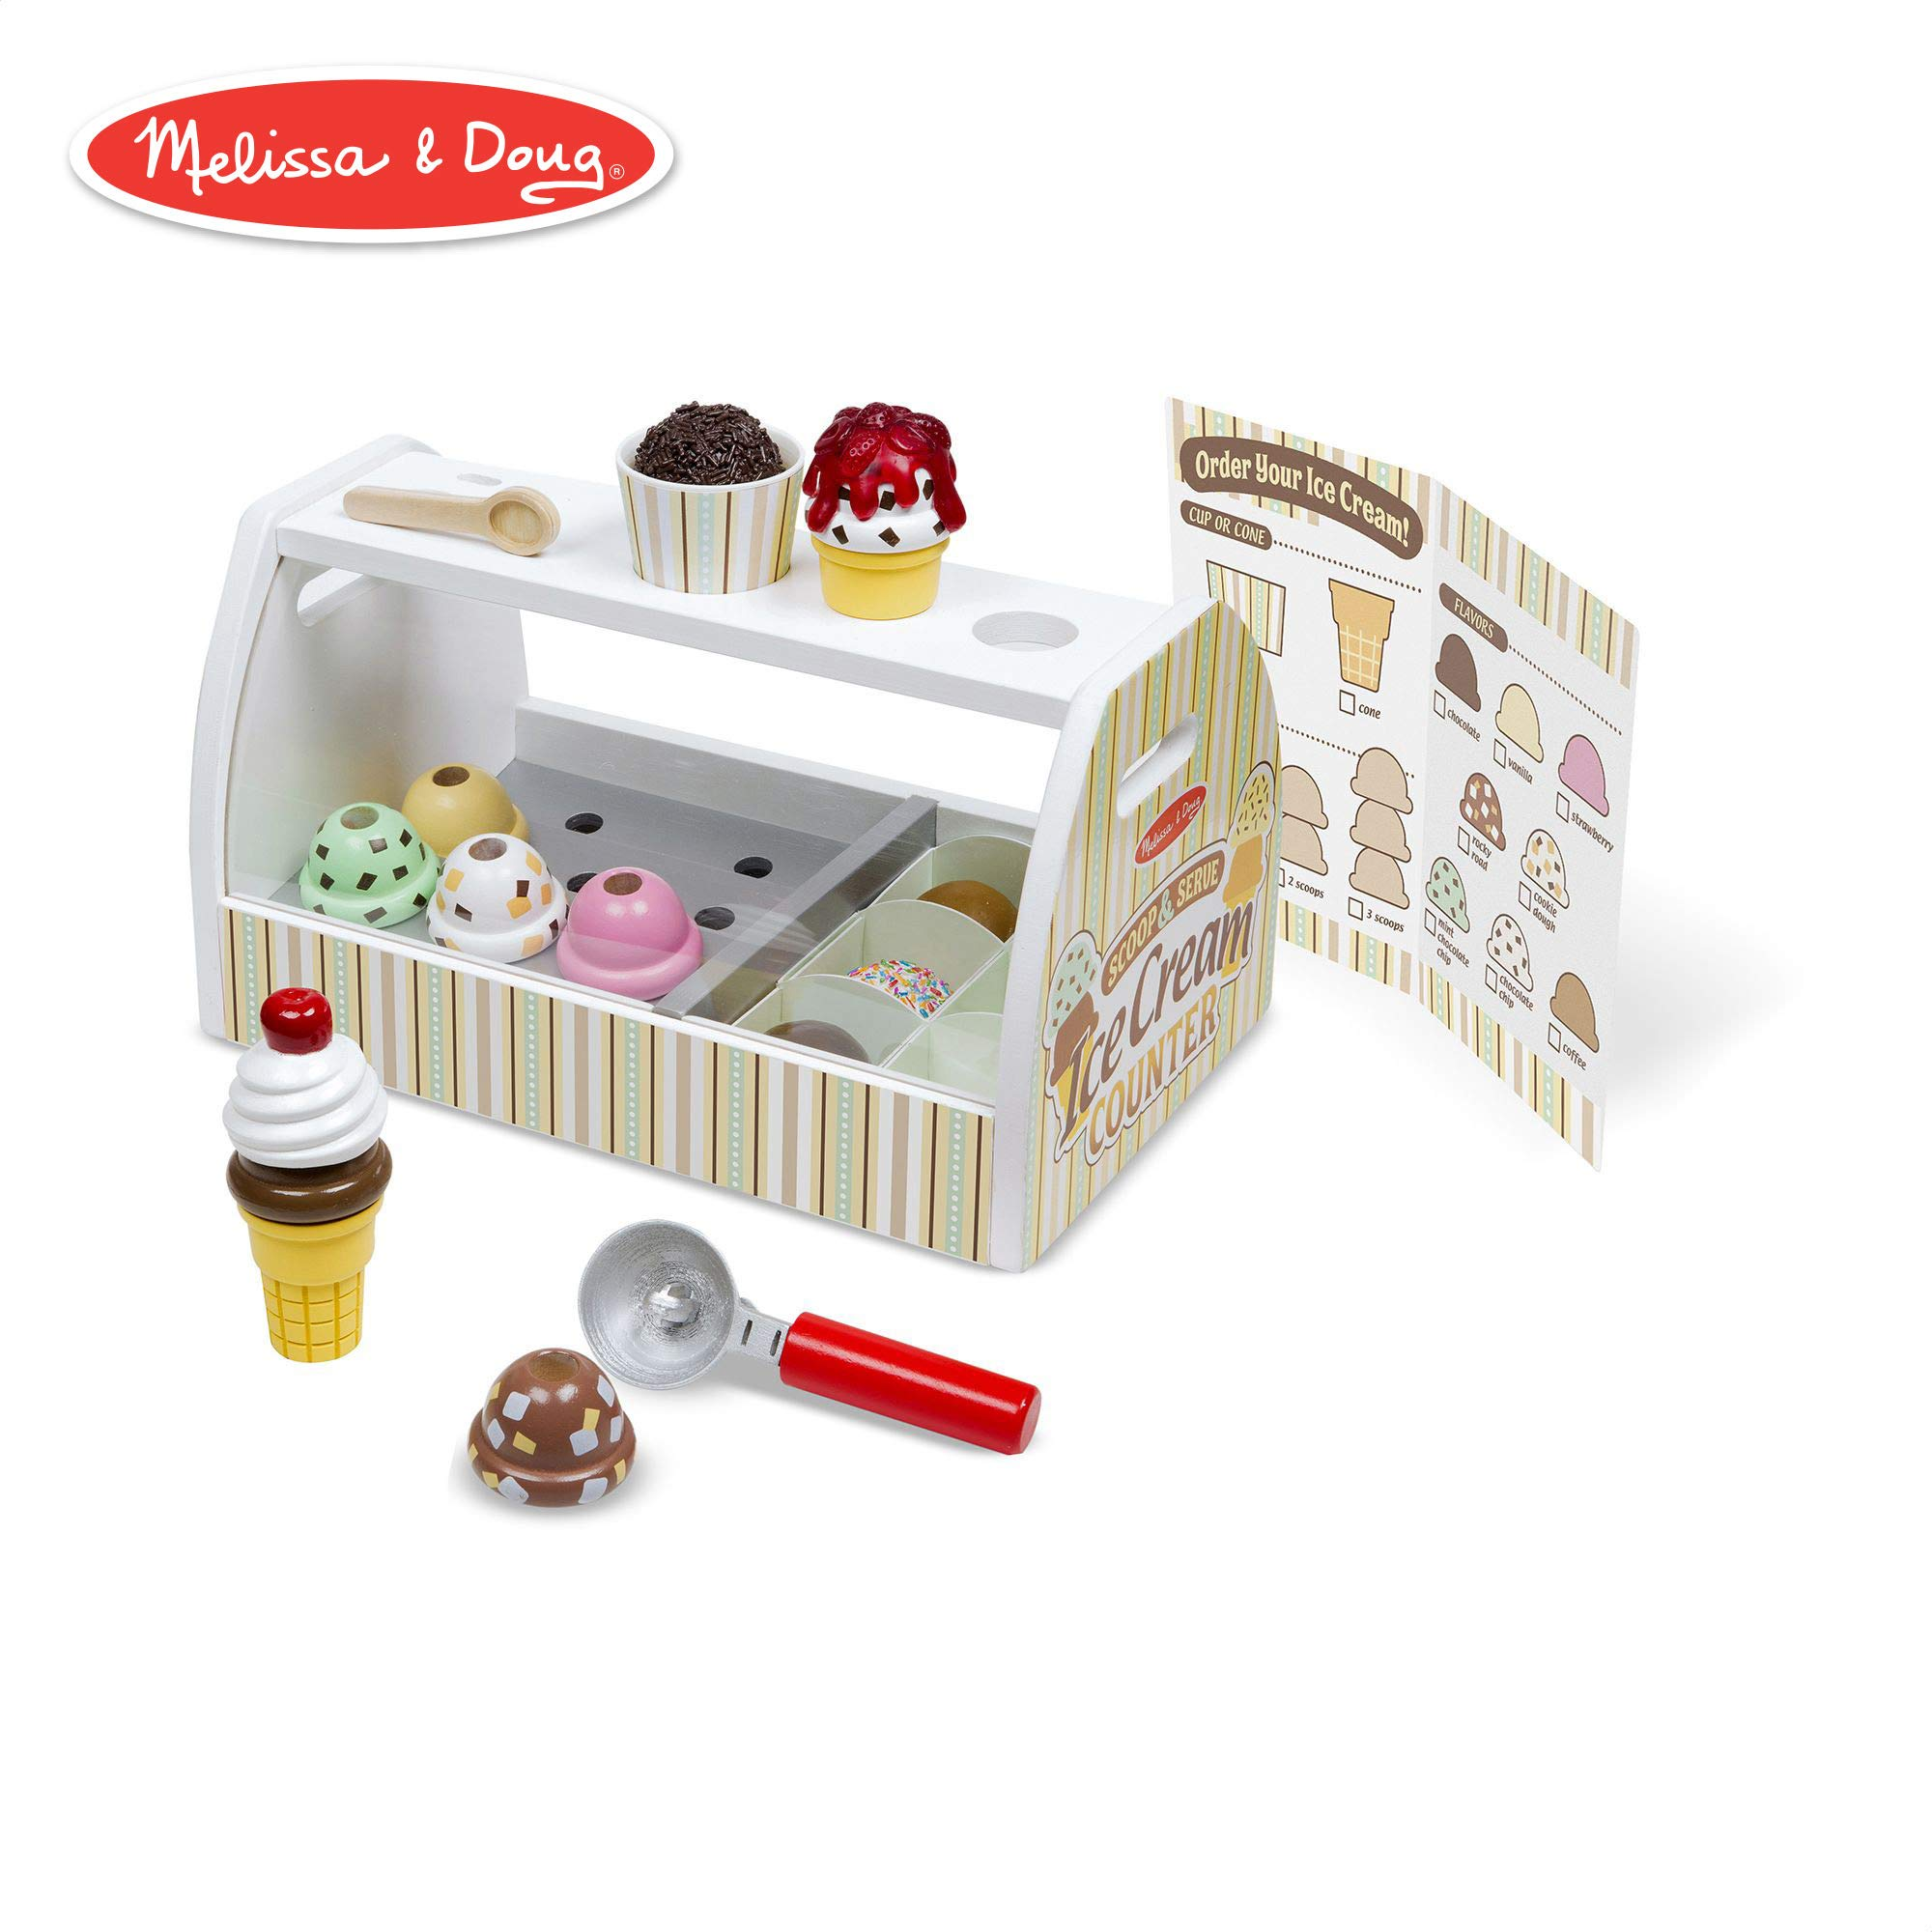 Melissa & Doug Wooden Scoop & Serve Ice Cream Counter (Play Food and Accessories, 28 Pieces, Realistic Scooper, 13.6'' H x 8.6'' W x 7.7'' L) by Melissa & Doug